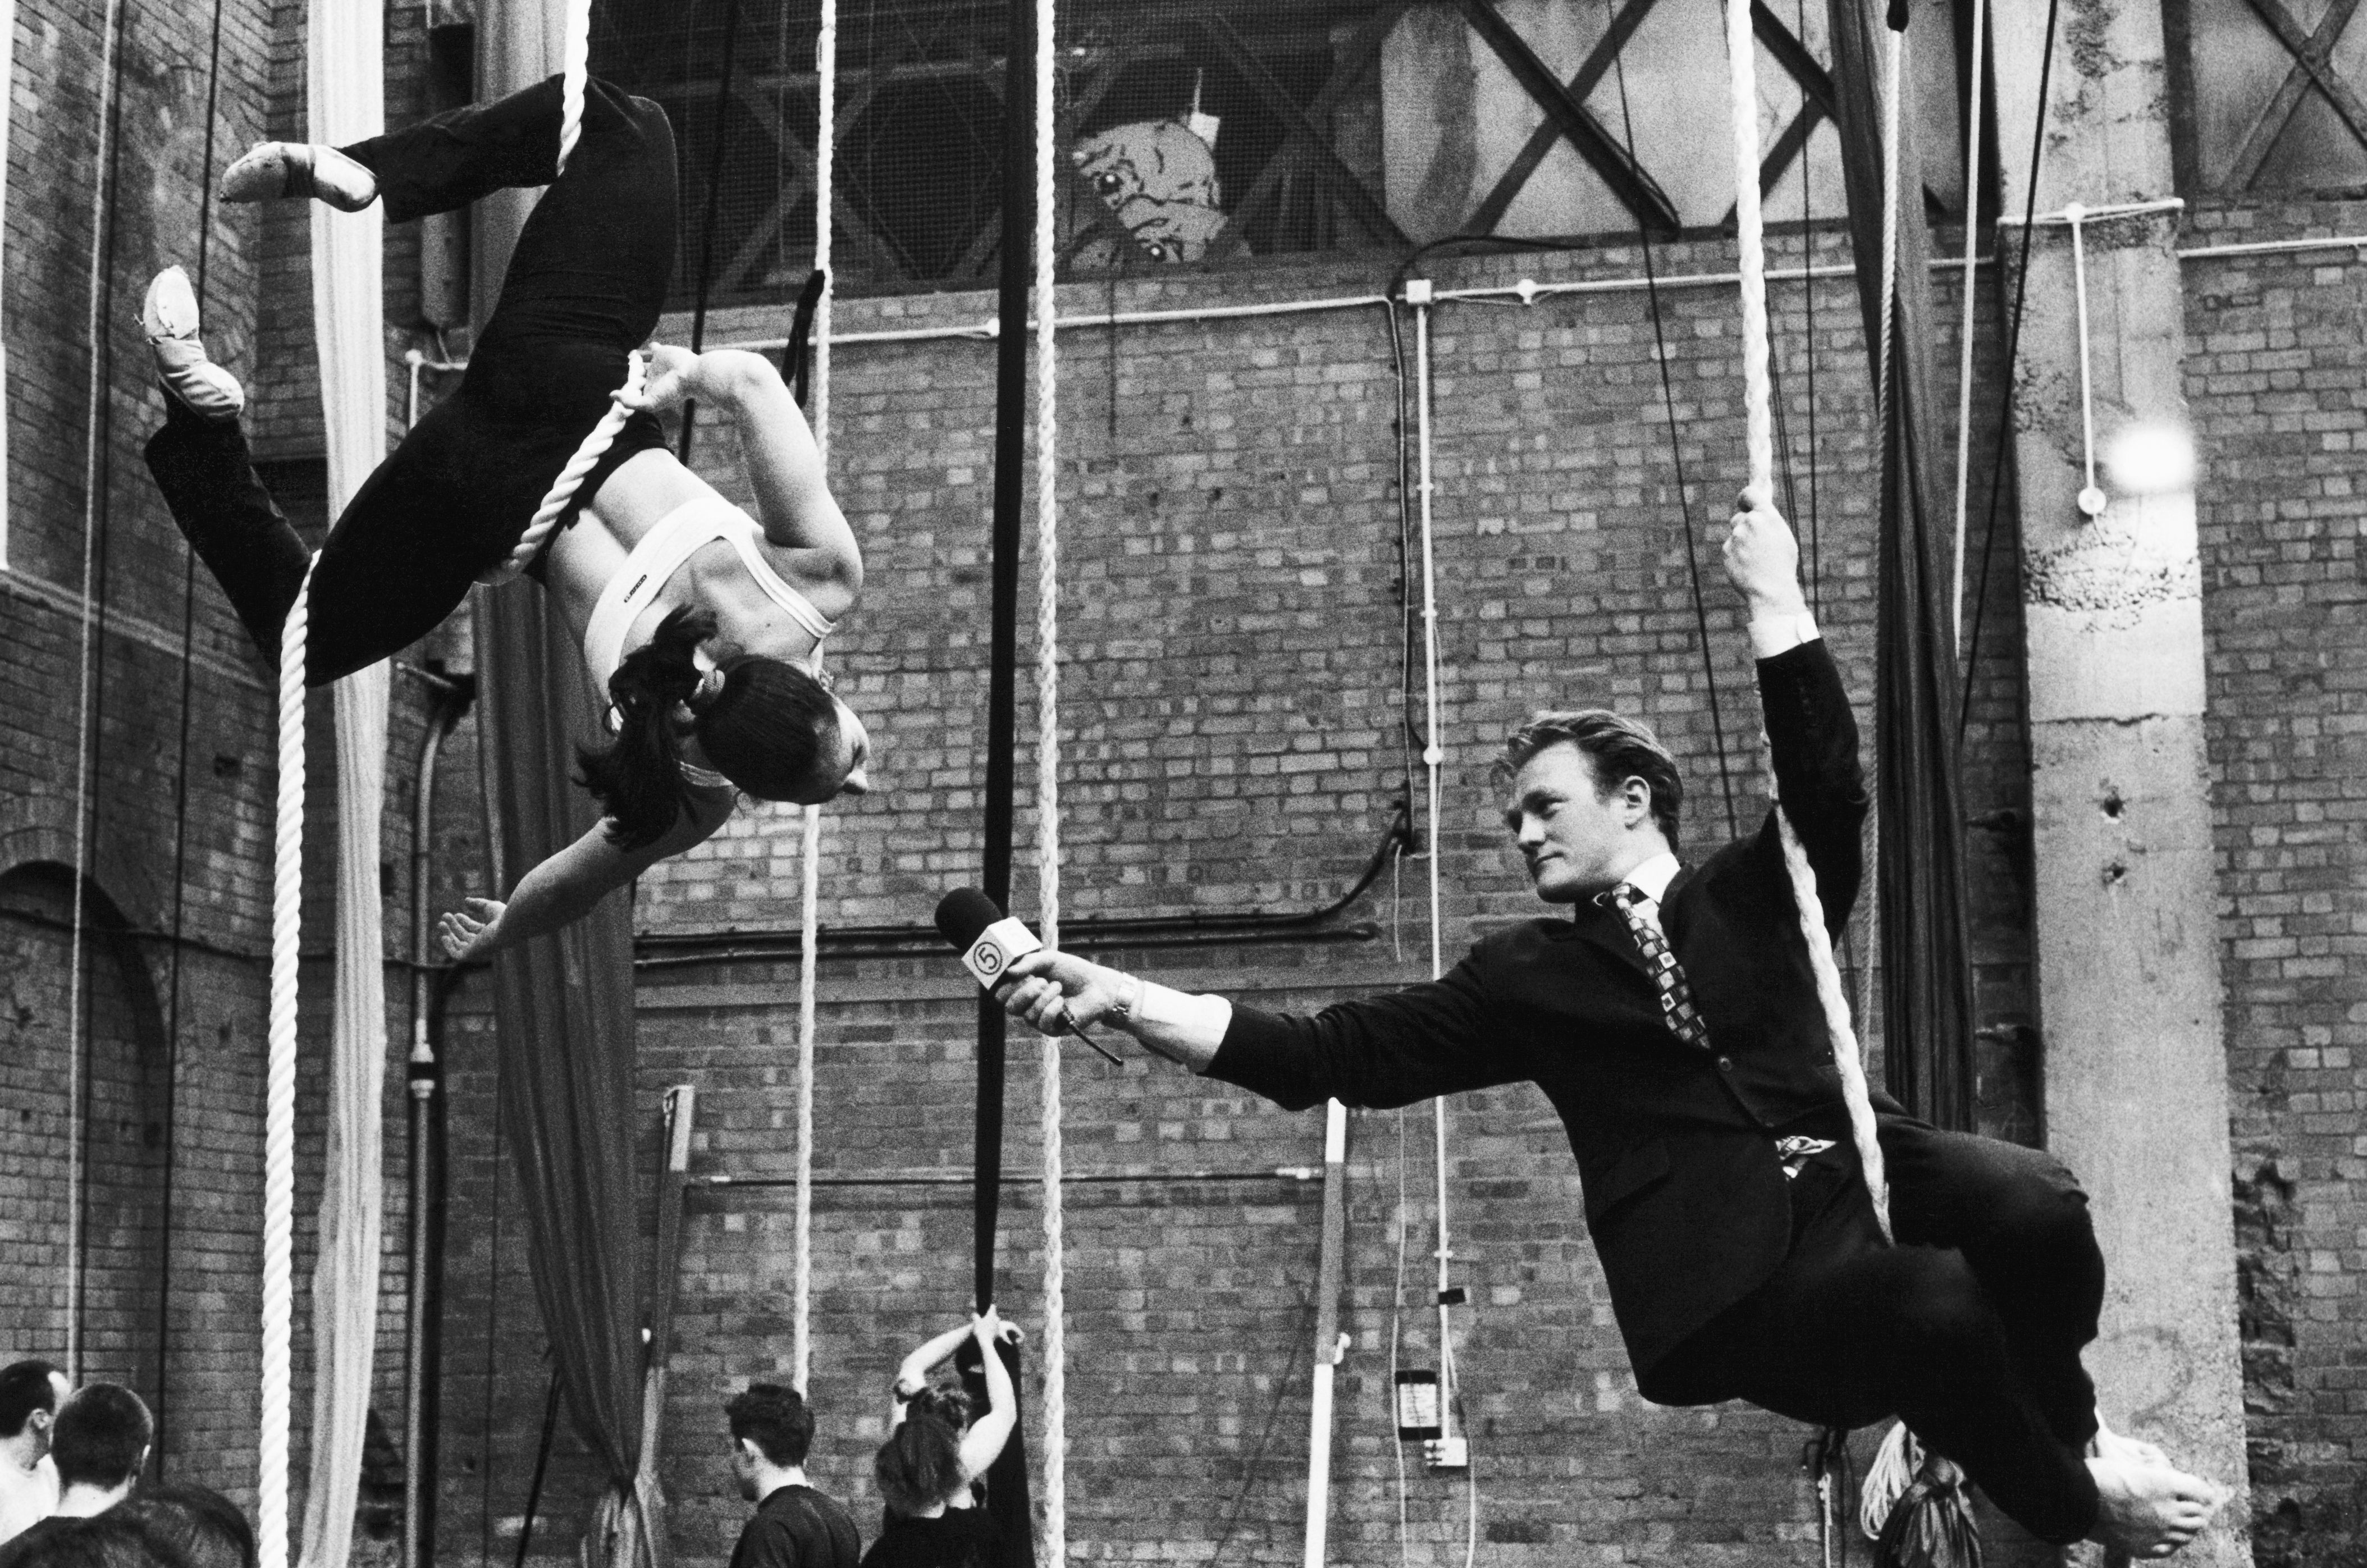 Journalist Interviewing an Aerial Acrobat at Rehearsal